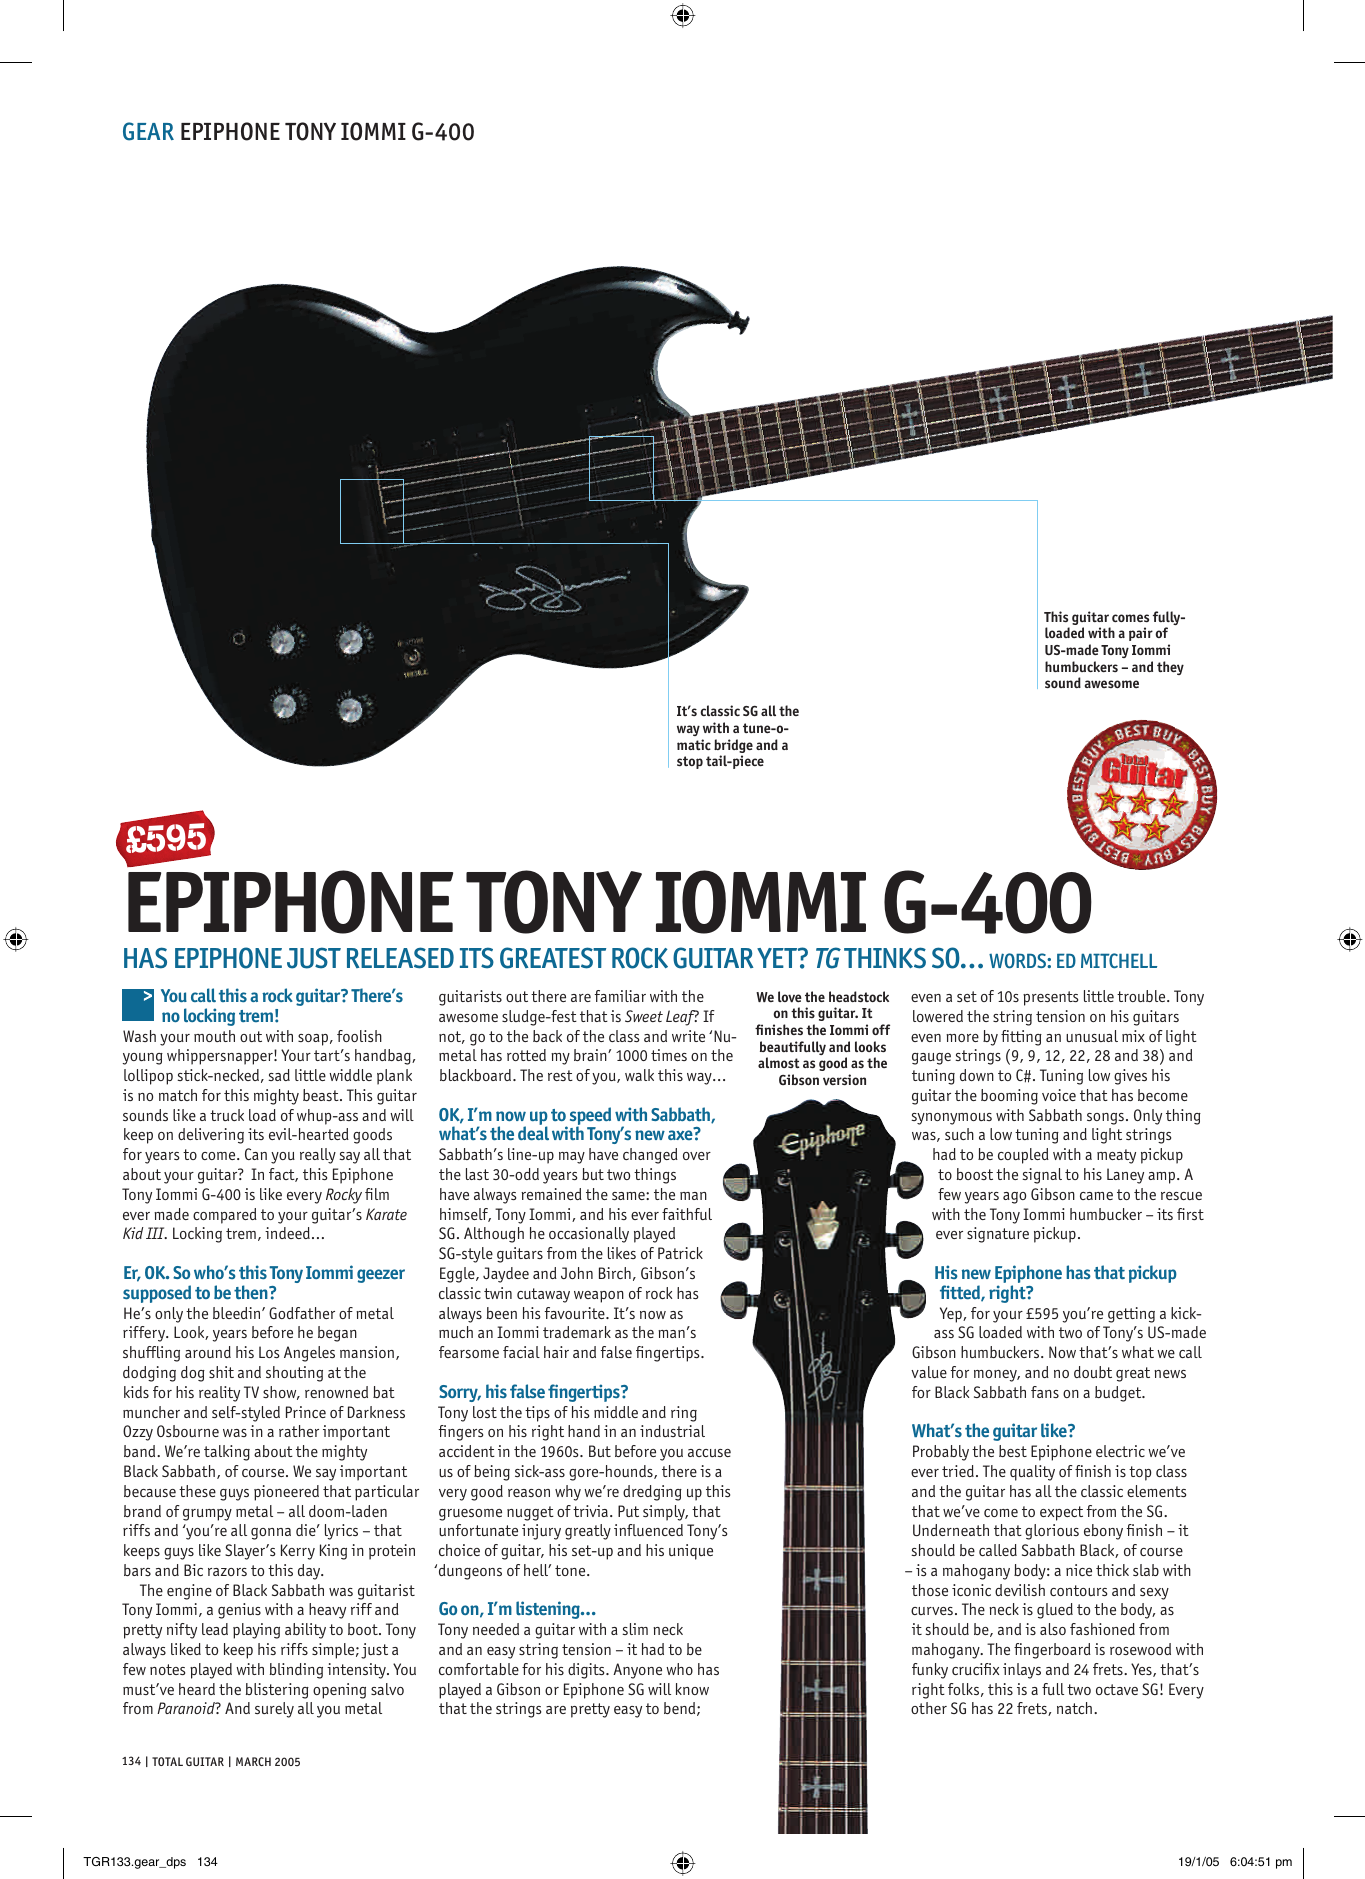 Epiphone Tony Iommi G 400 Users Manual Tgr133gear Dps Special Sg G310 Wiring Diagram Page 1 Of 2